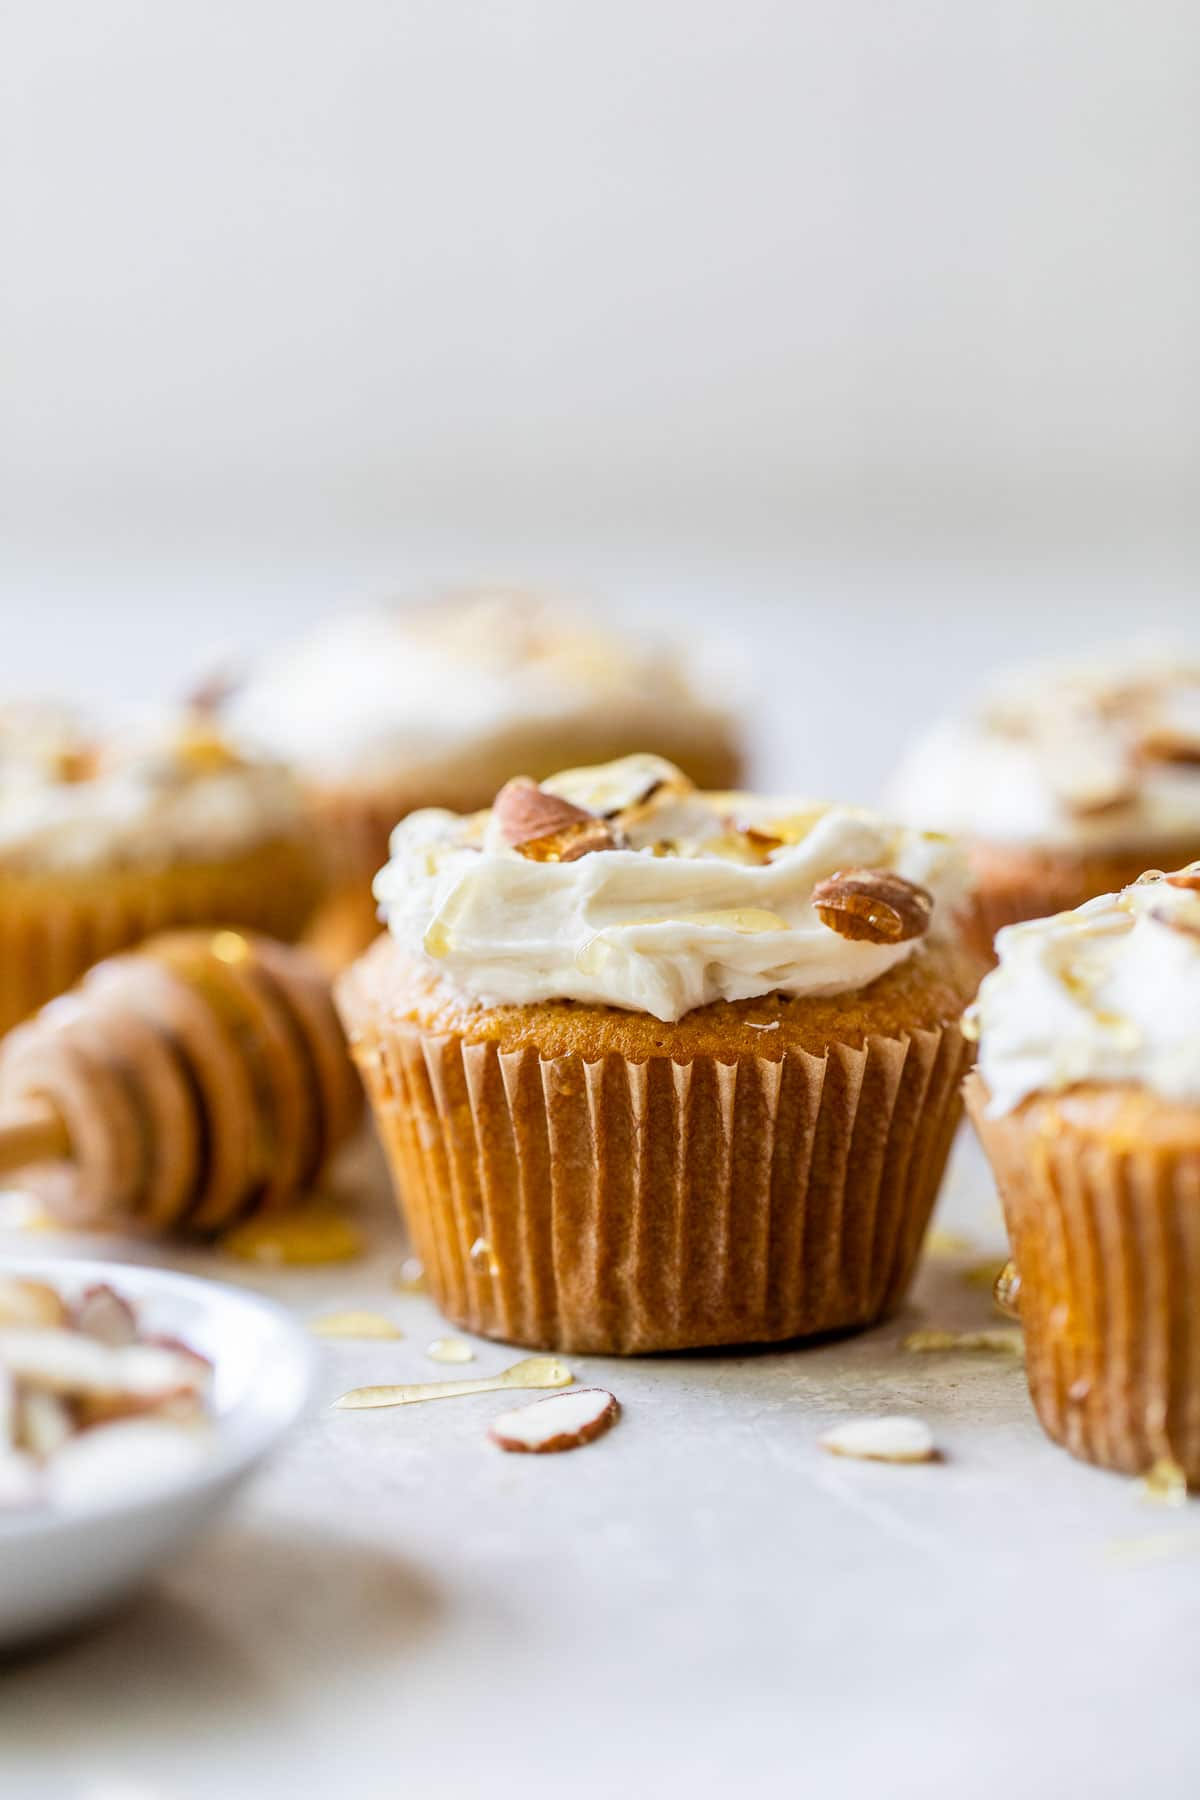 yellow cupcakes topped with white icing, sliced almonds and a drizzle of honey